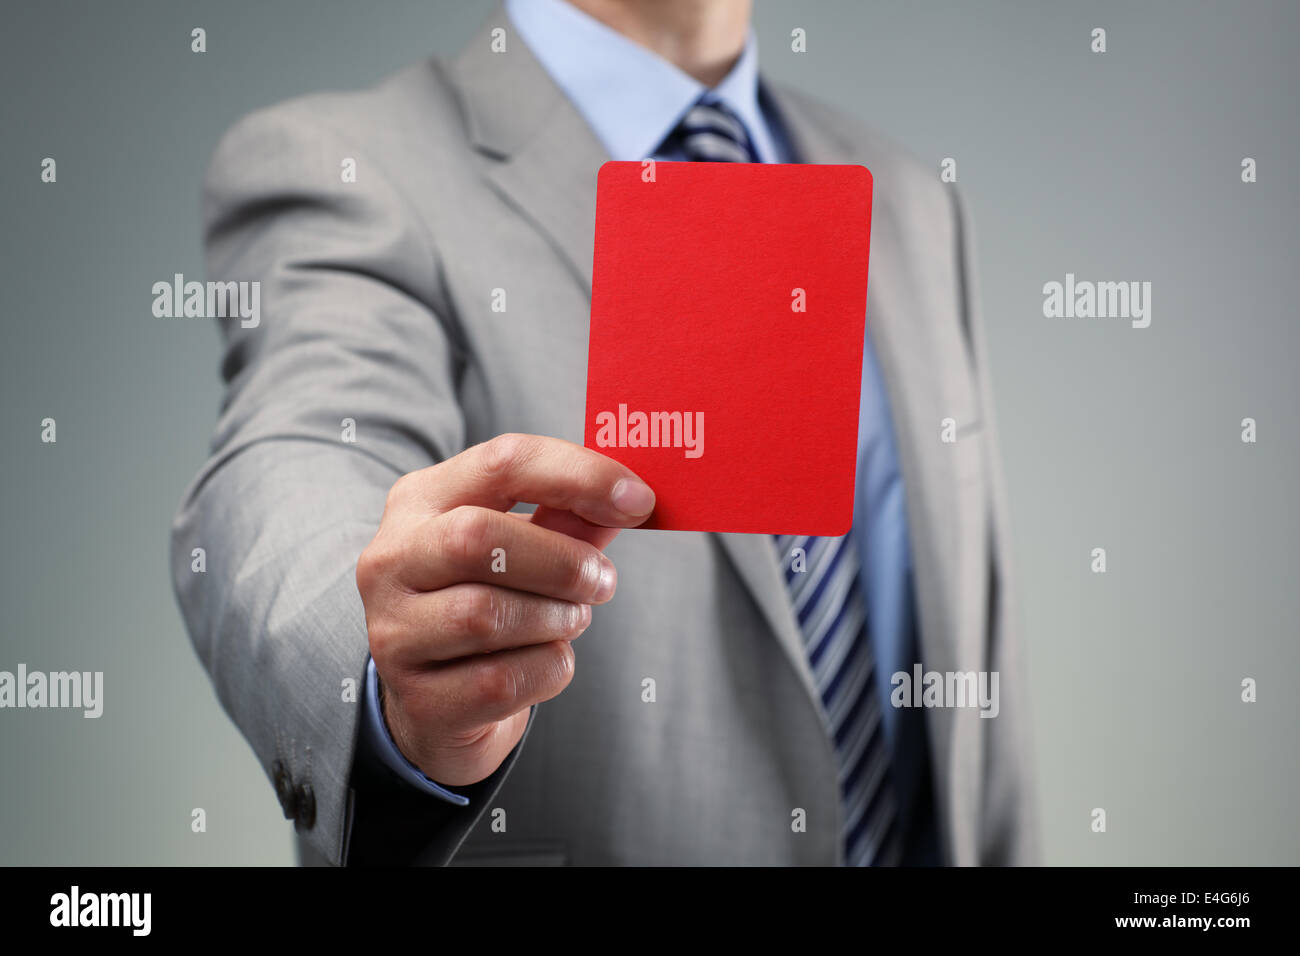 Businessman showing the red card - Stock Image